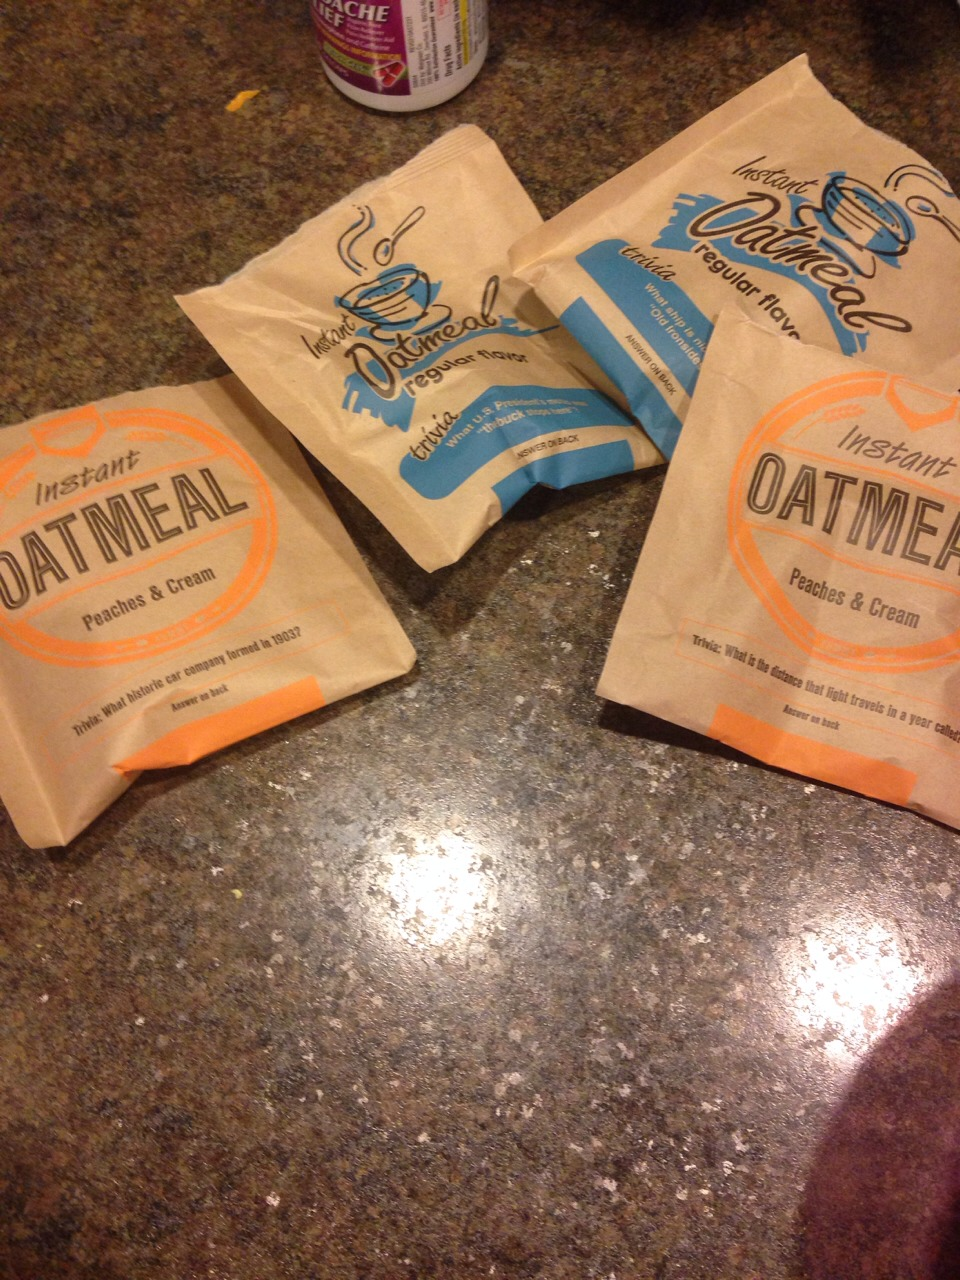 I used 4 packs of oatmeal. 2 regular and two peaches and cream for good smelling hair.